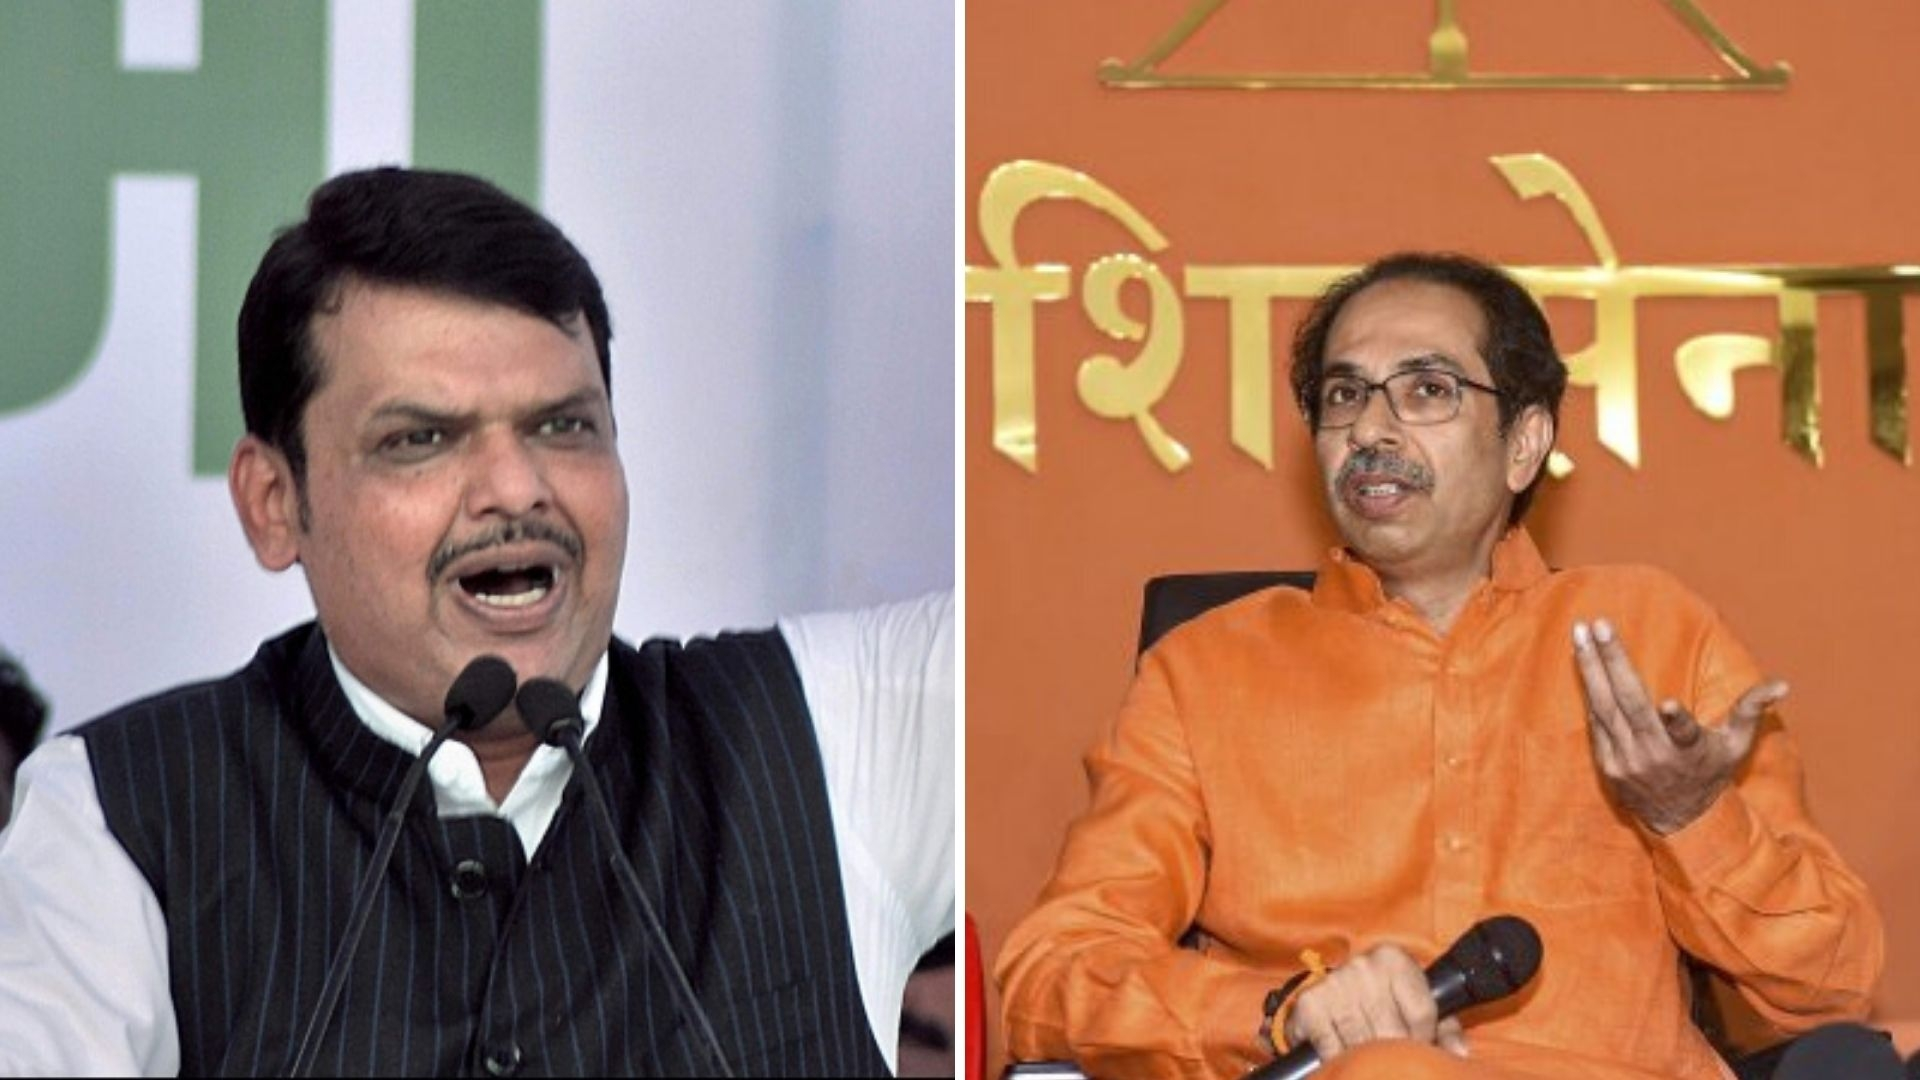 BJP Attempting Horse Trading Under Cover of President's Rule: Sena